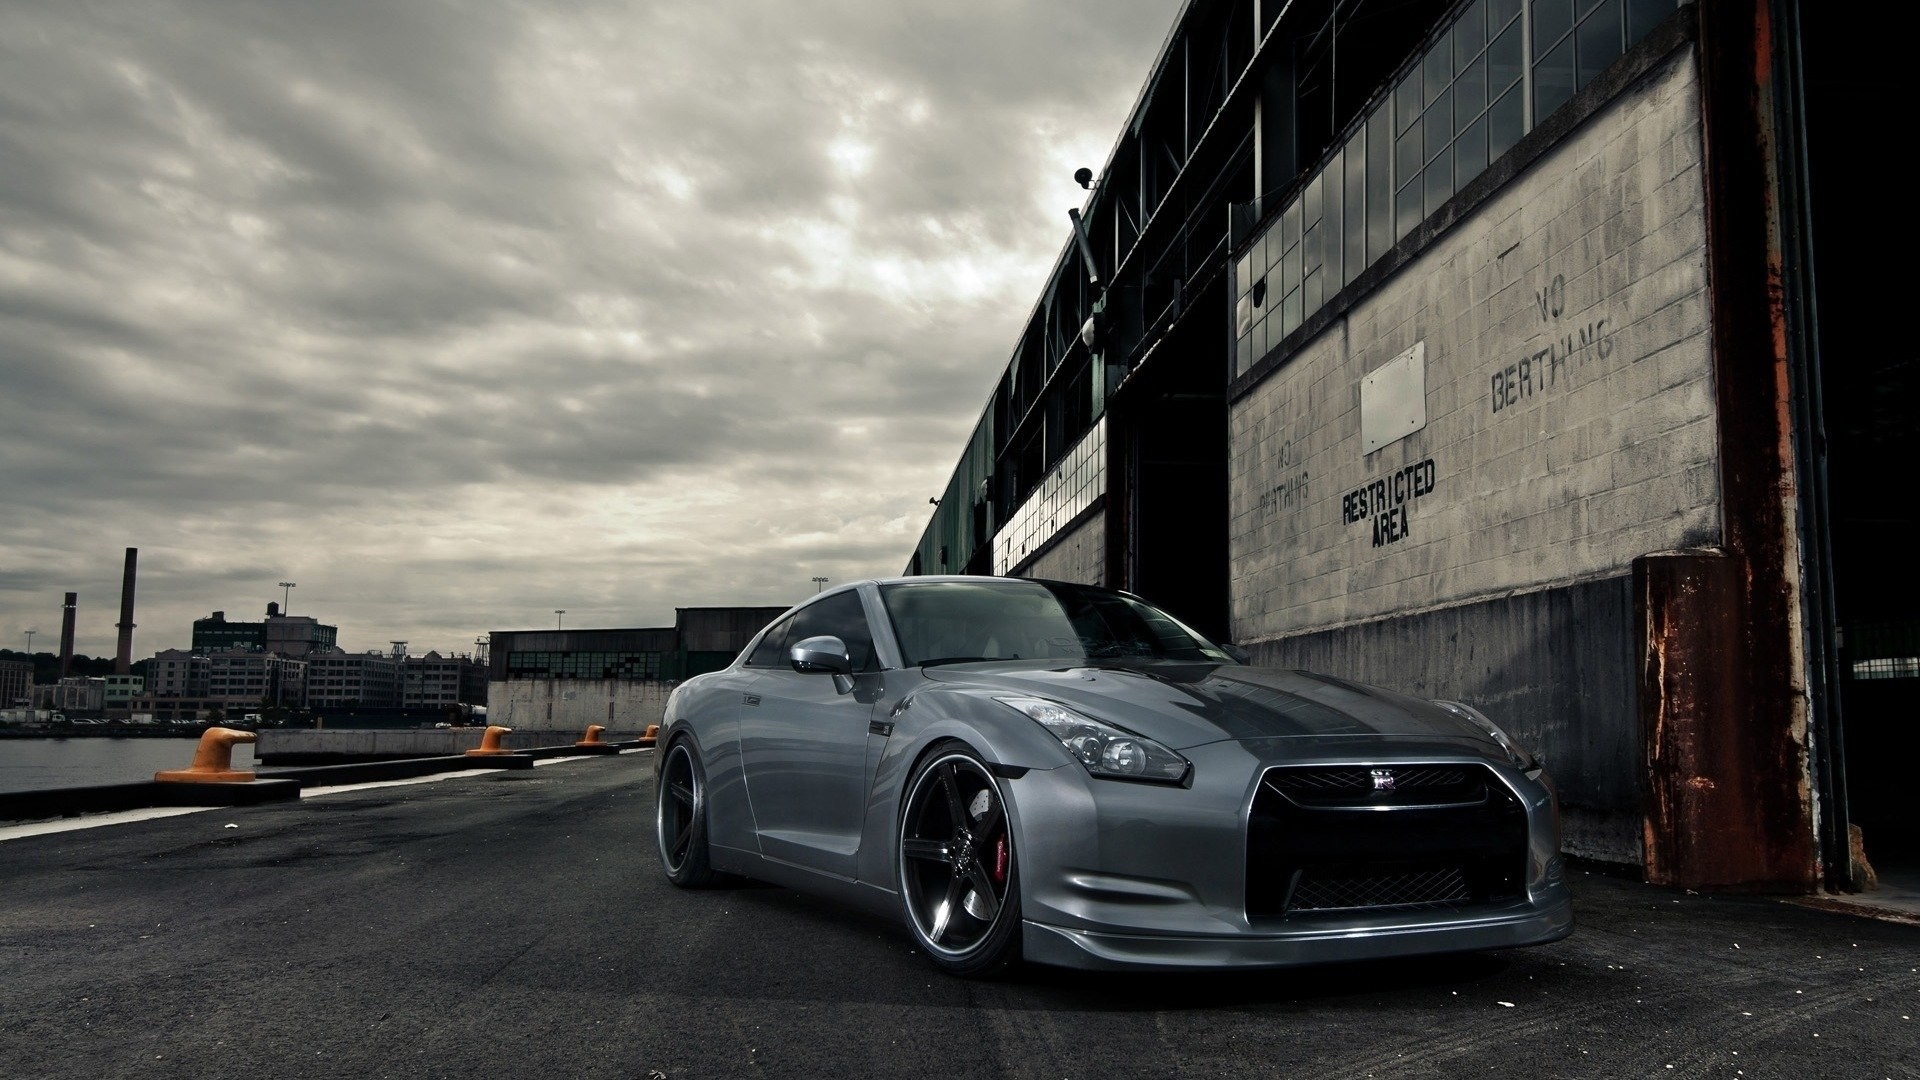 Download Nissan GT-R wallpaper (1920×1080)